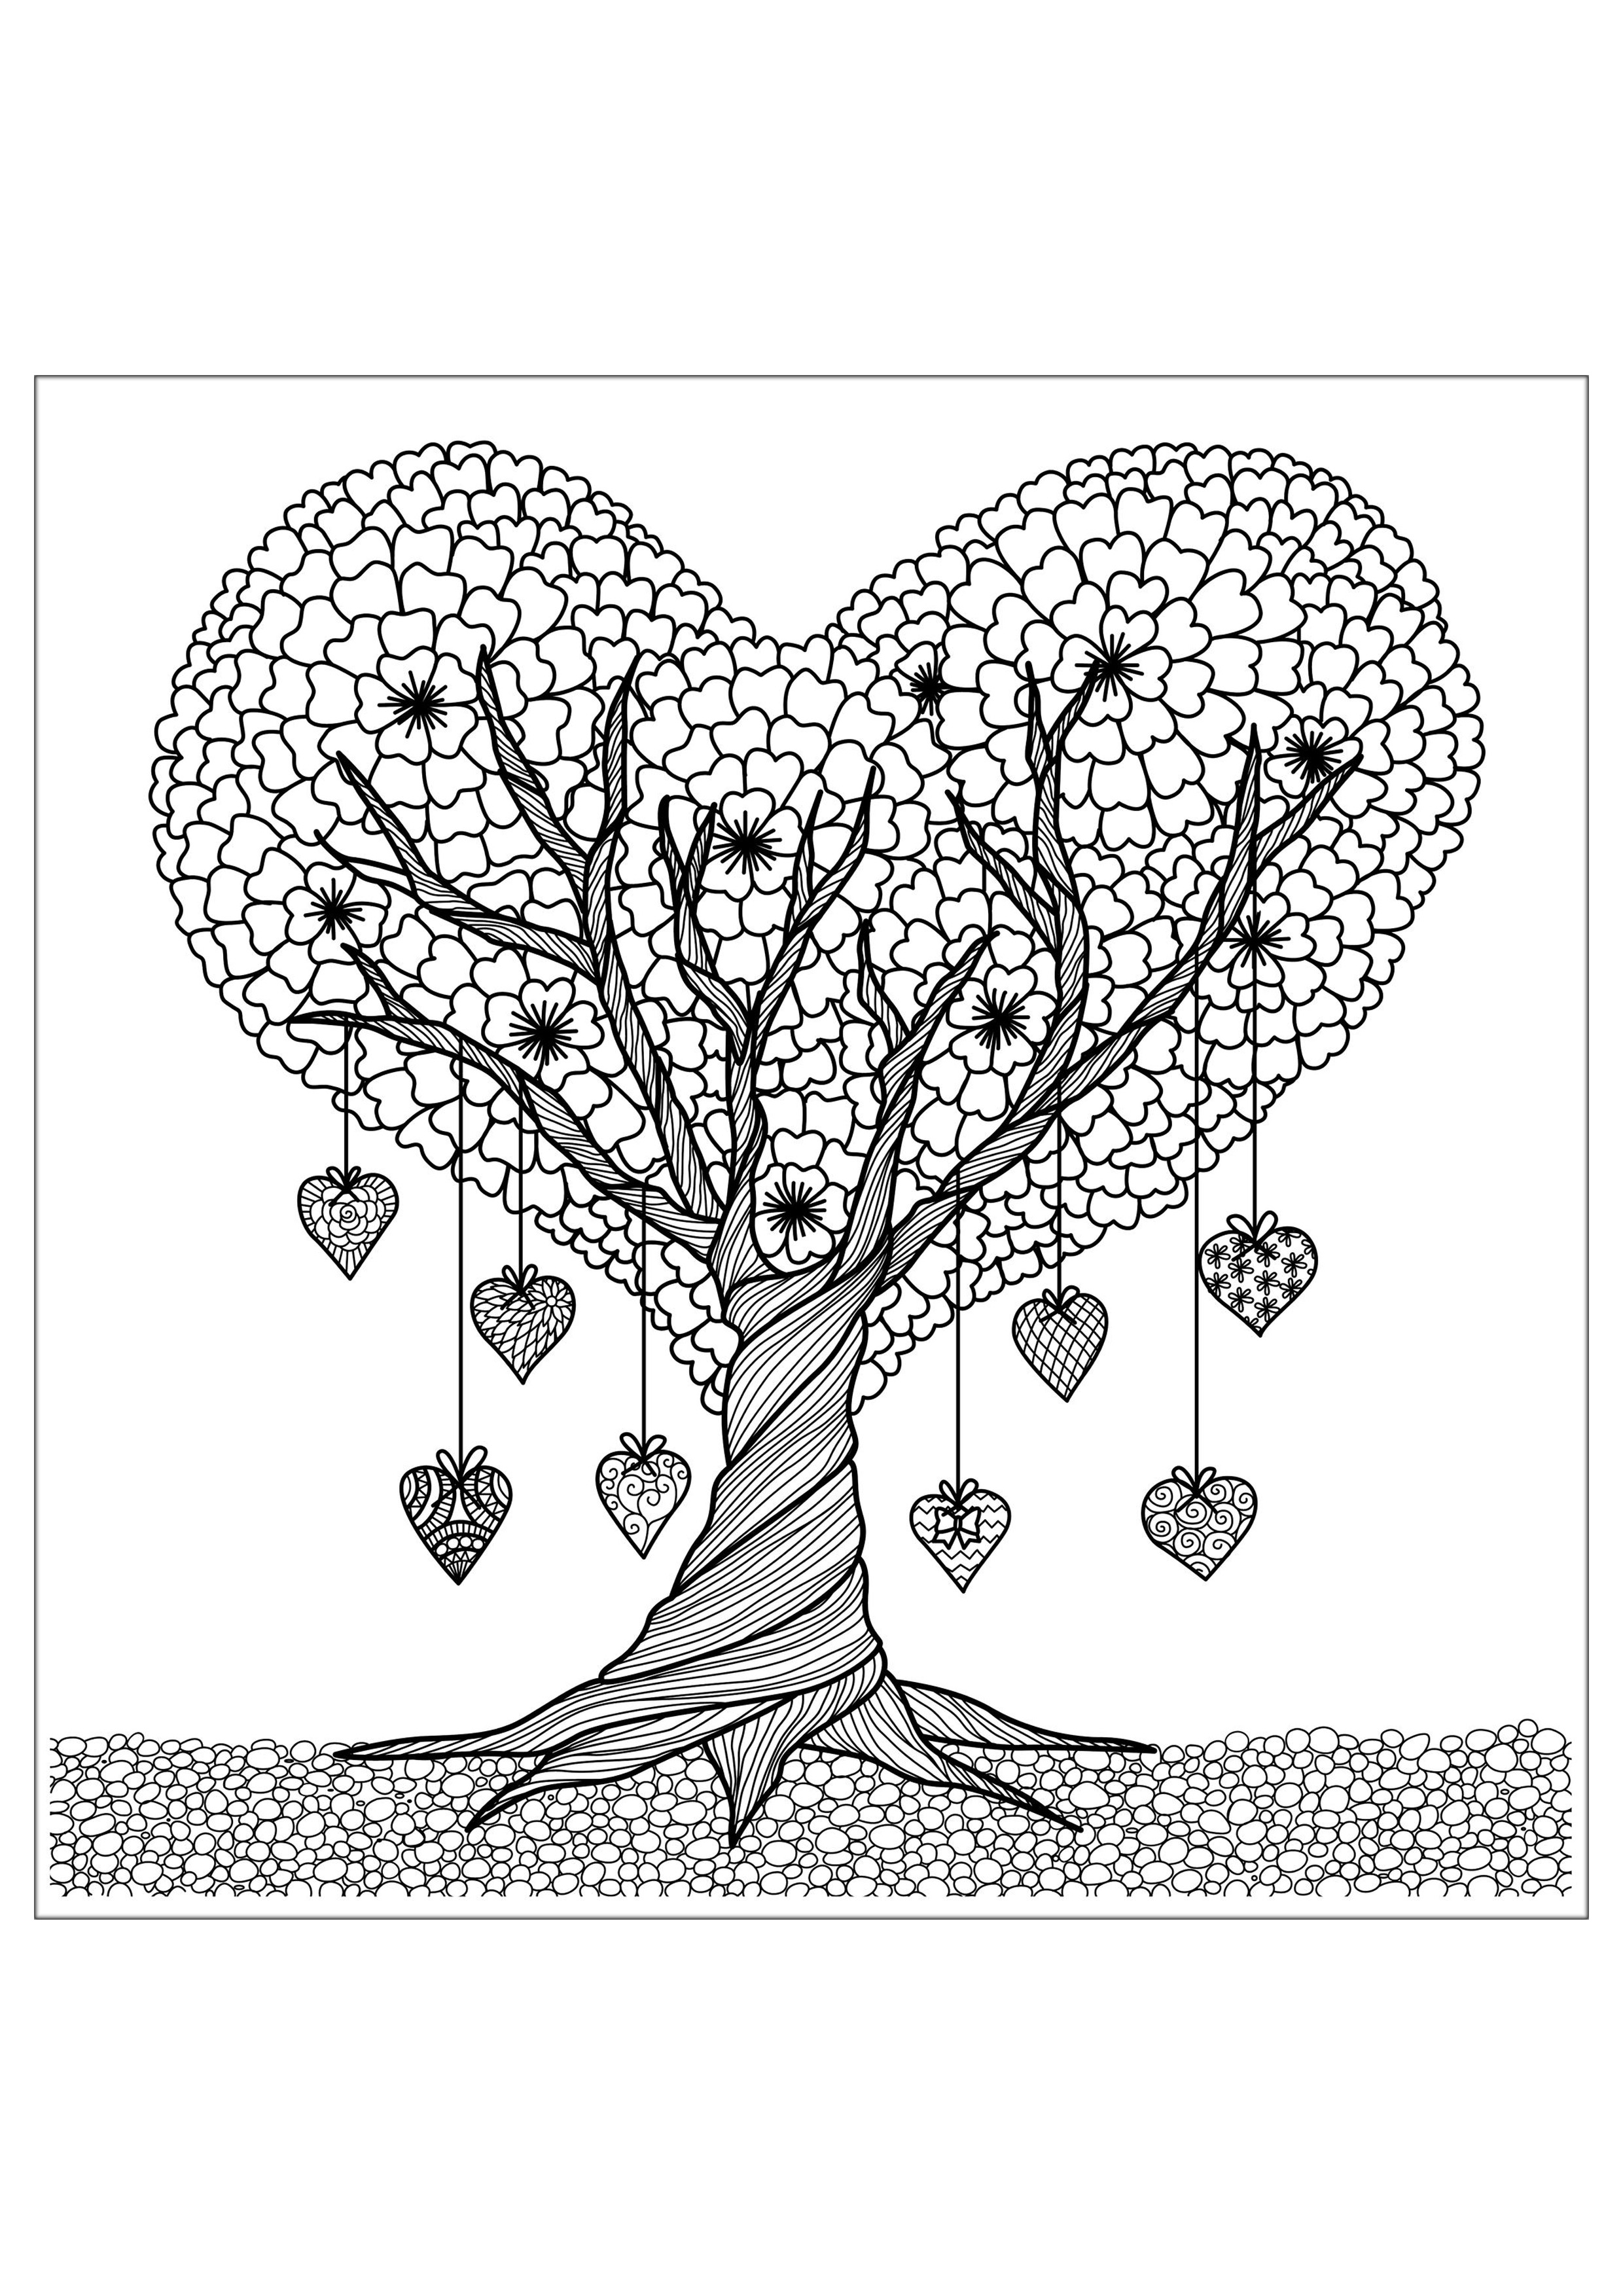 Coloring Pages For Adults Trees : Flowers and vegetation coloring pages for adults